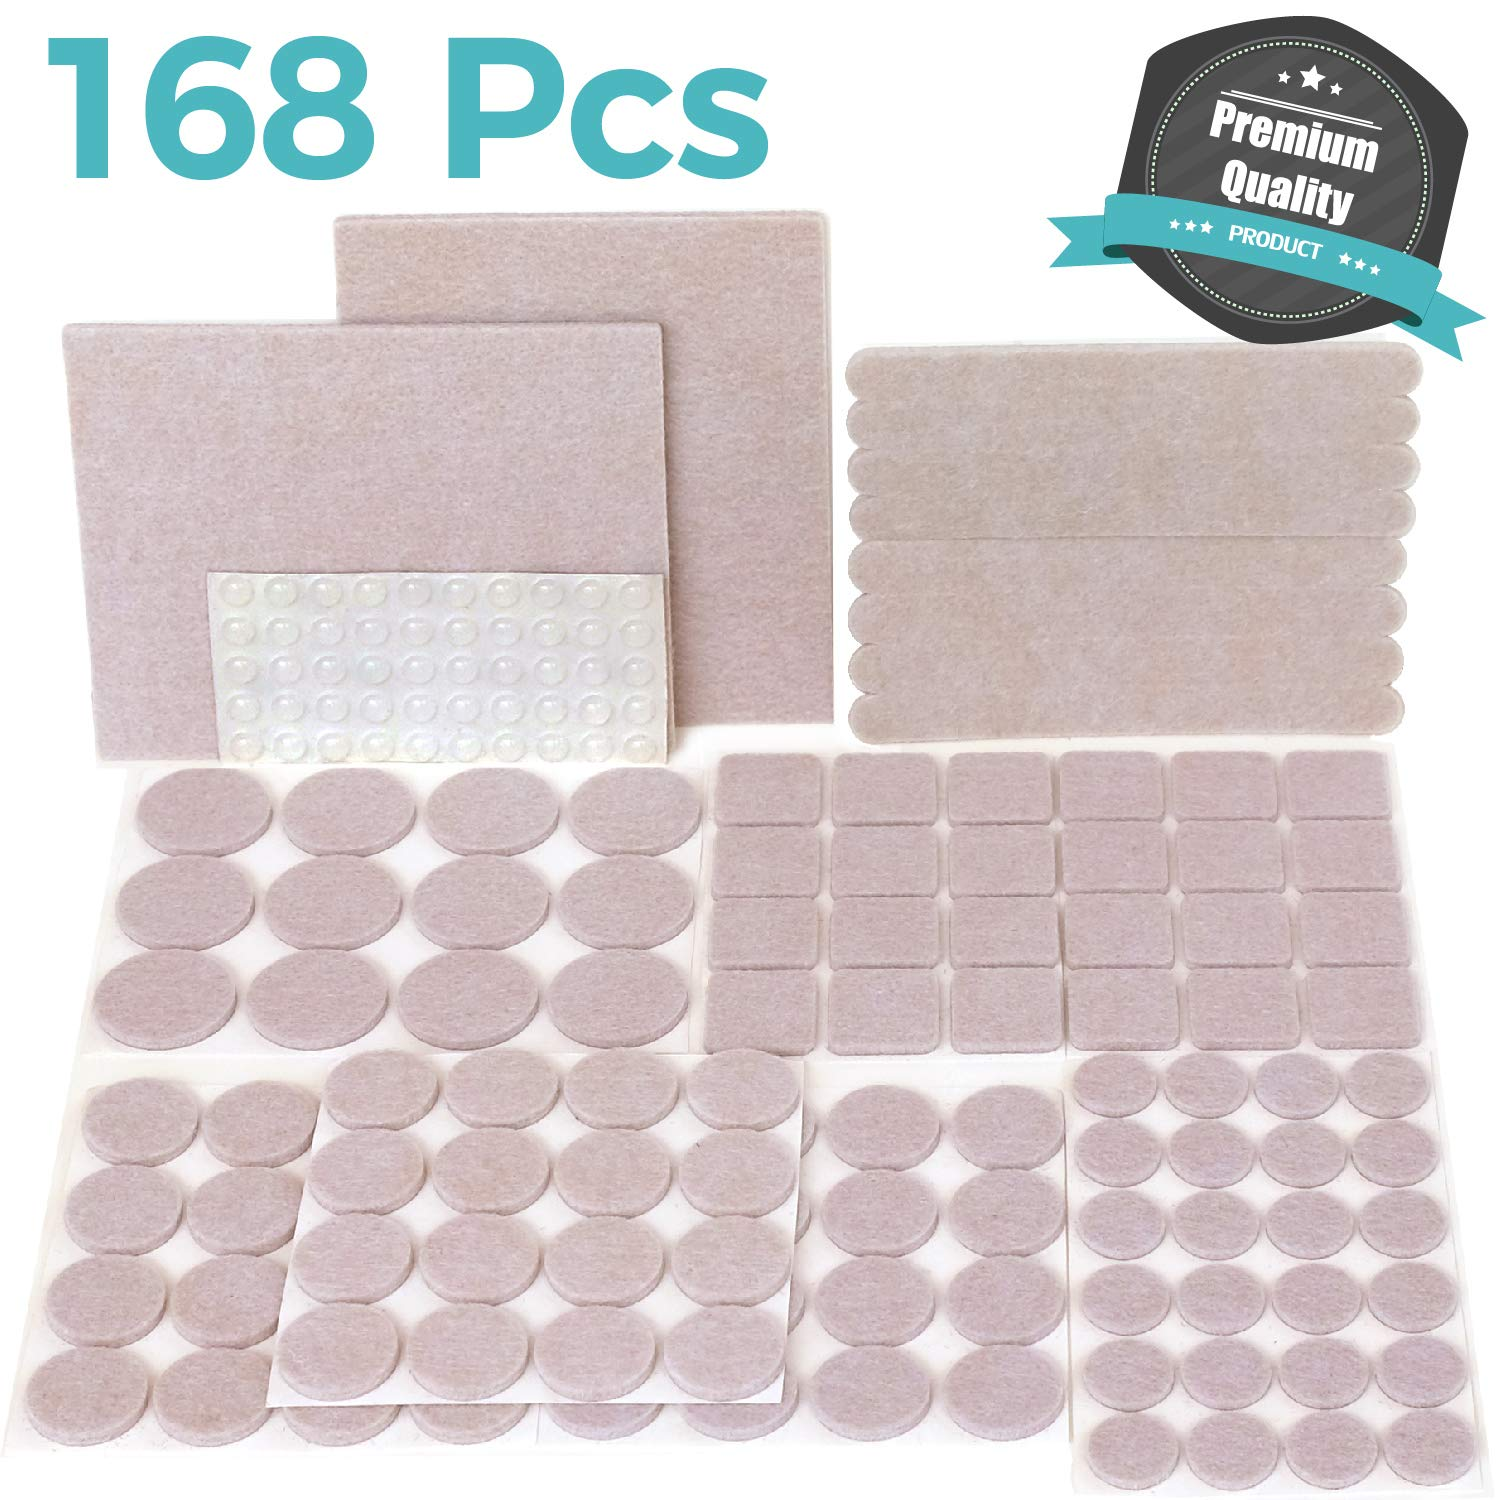 PREMIUM Furniture Pads Set 168 Pcs Value Pack Beige - Heavy Duty Adhesive Felt Pads for Furniture Feet, Assorted Sizes with Noise Dampening Clear Rubber Bumpers. Protect Hardwood & Laminate Flooring